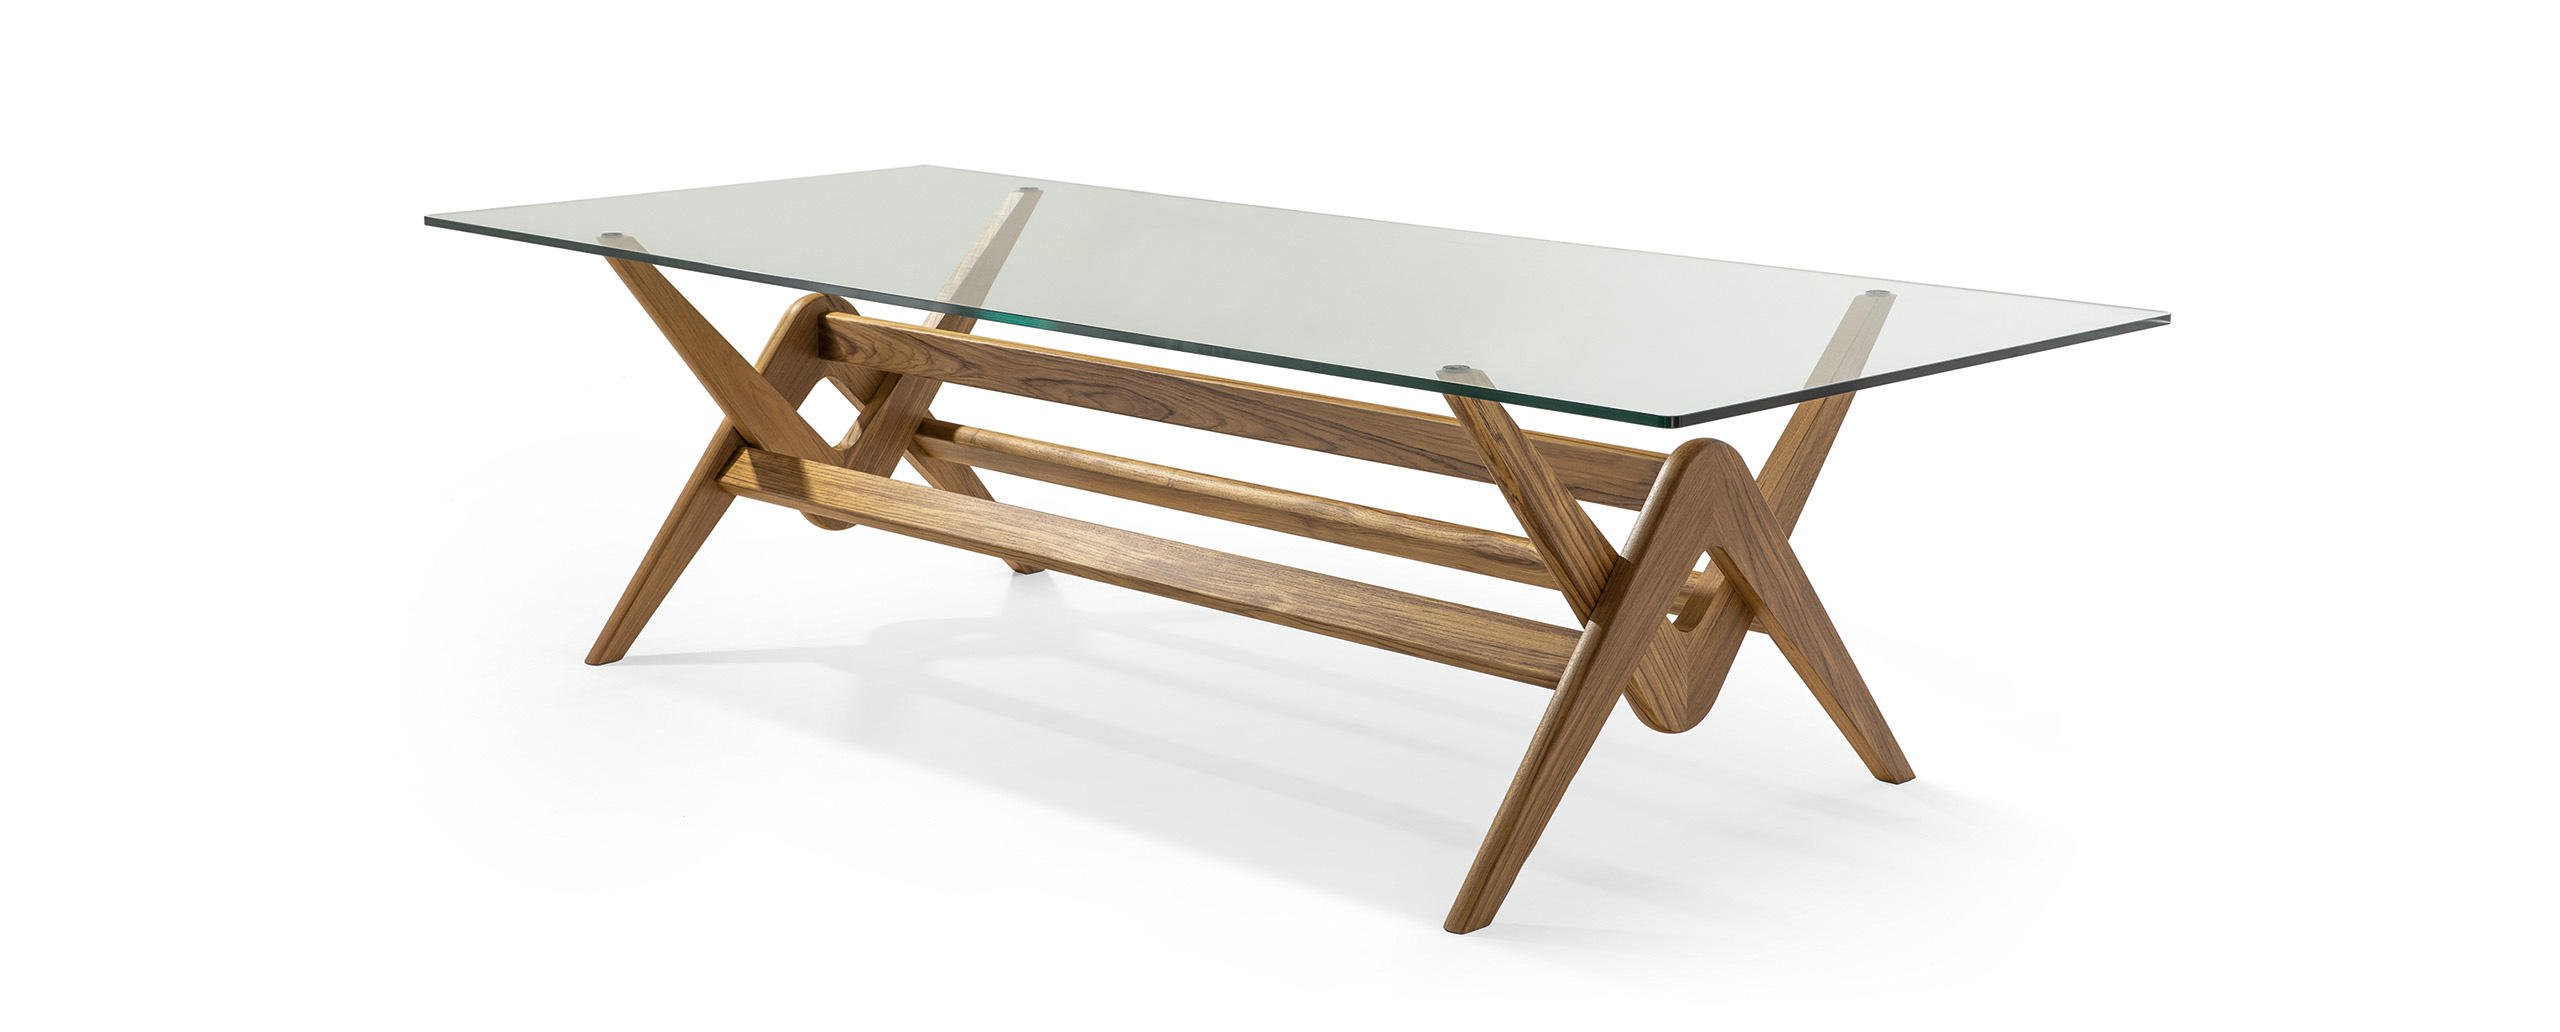 10_cassina_capitol_complex_table_hommage_o_pierre_jeanneret_cassina_rd